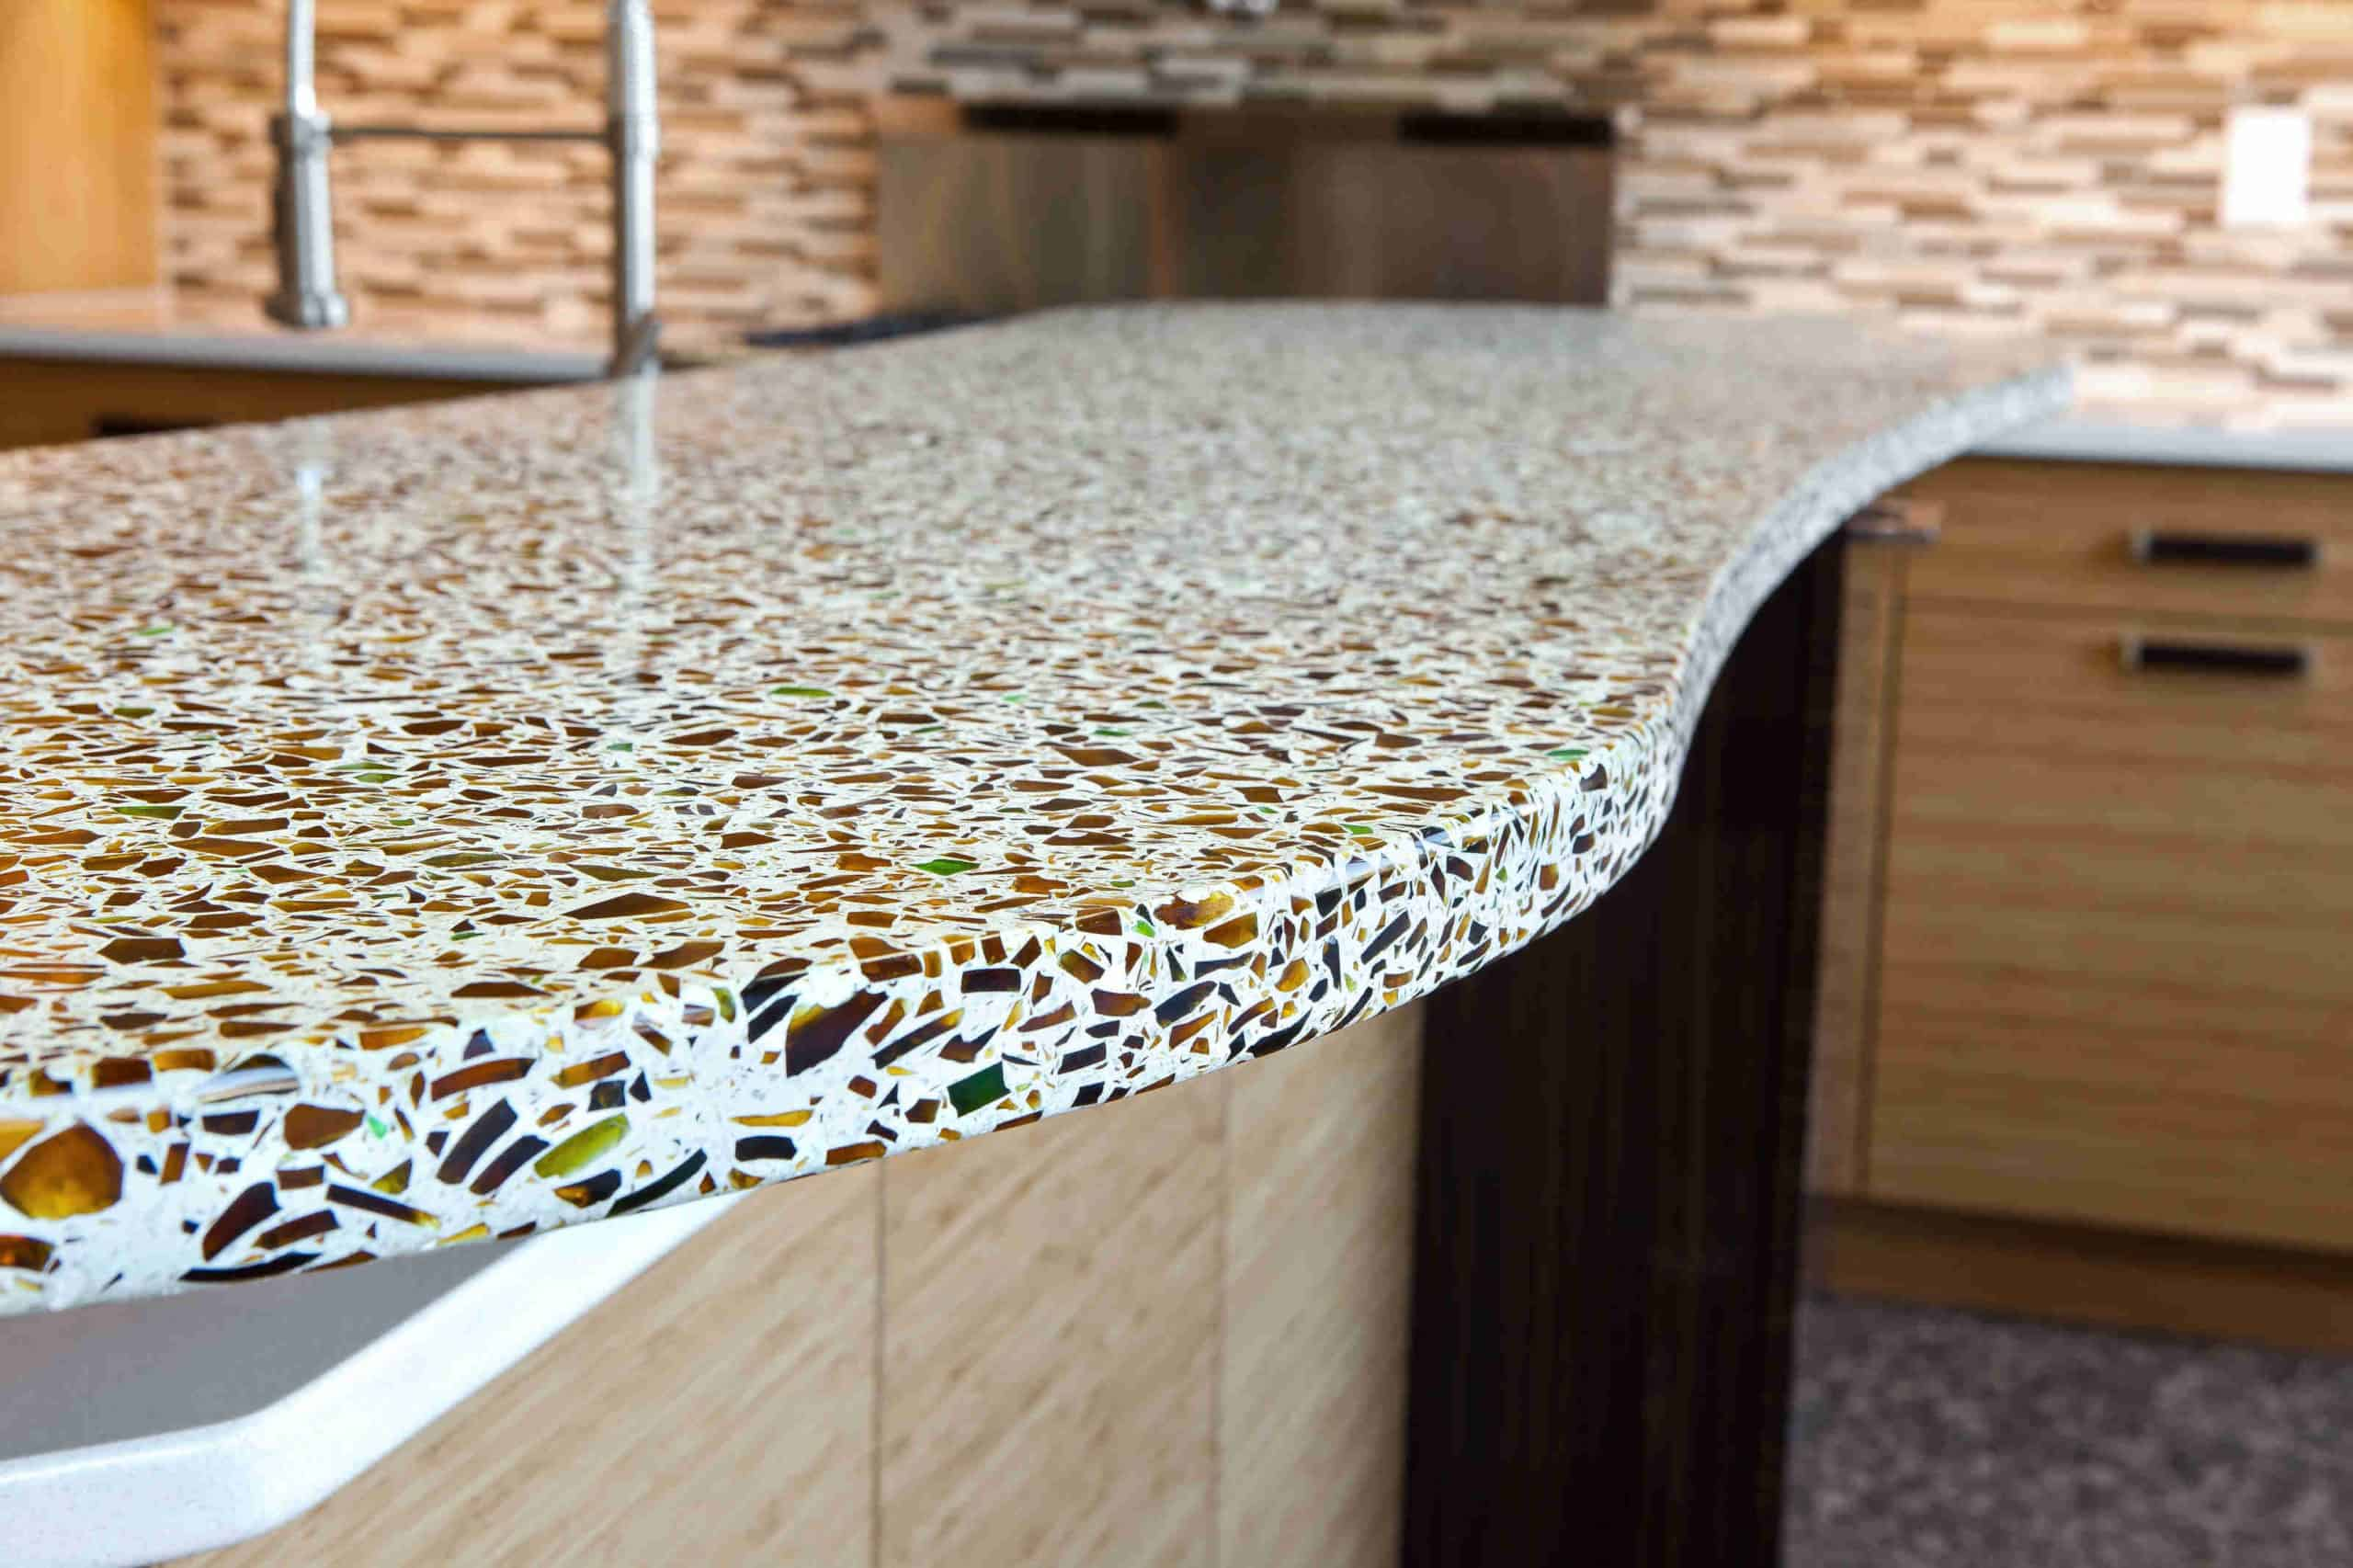 Recycled Glass Countertop kitchen counter ideas